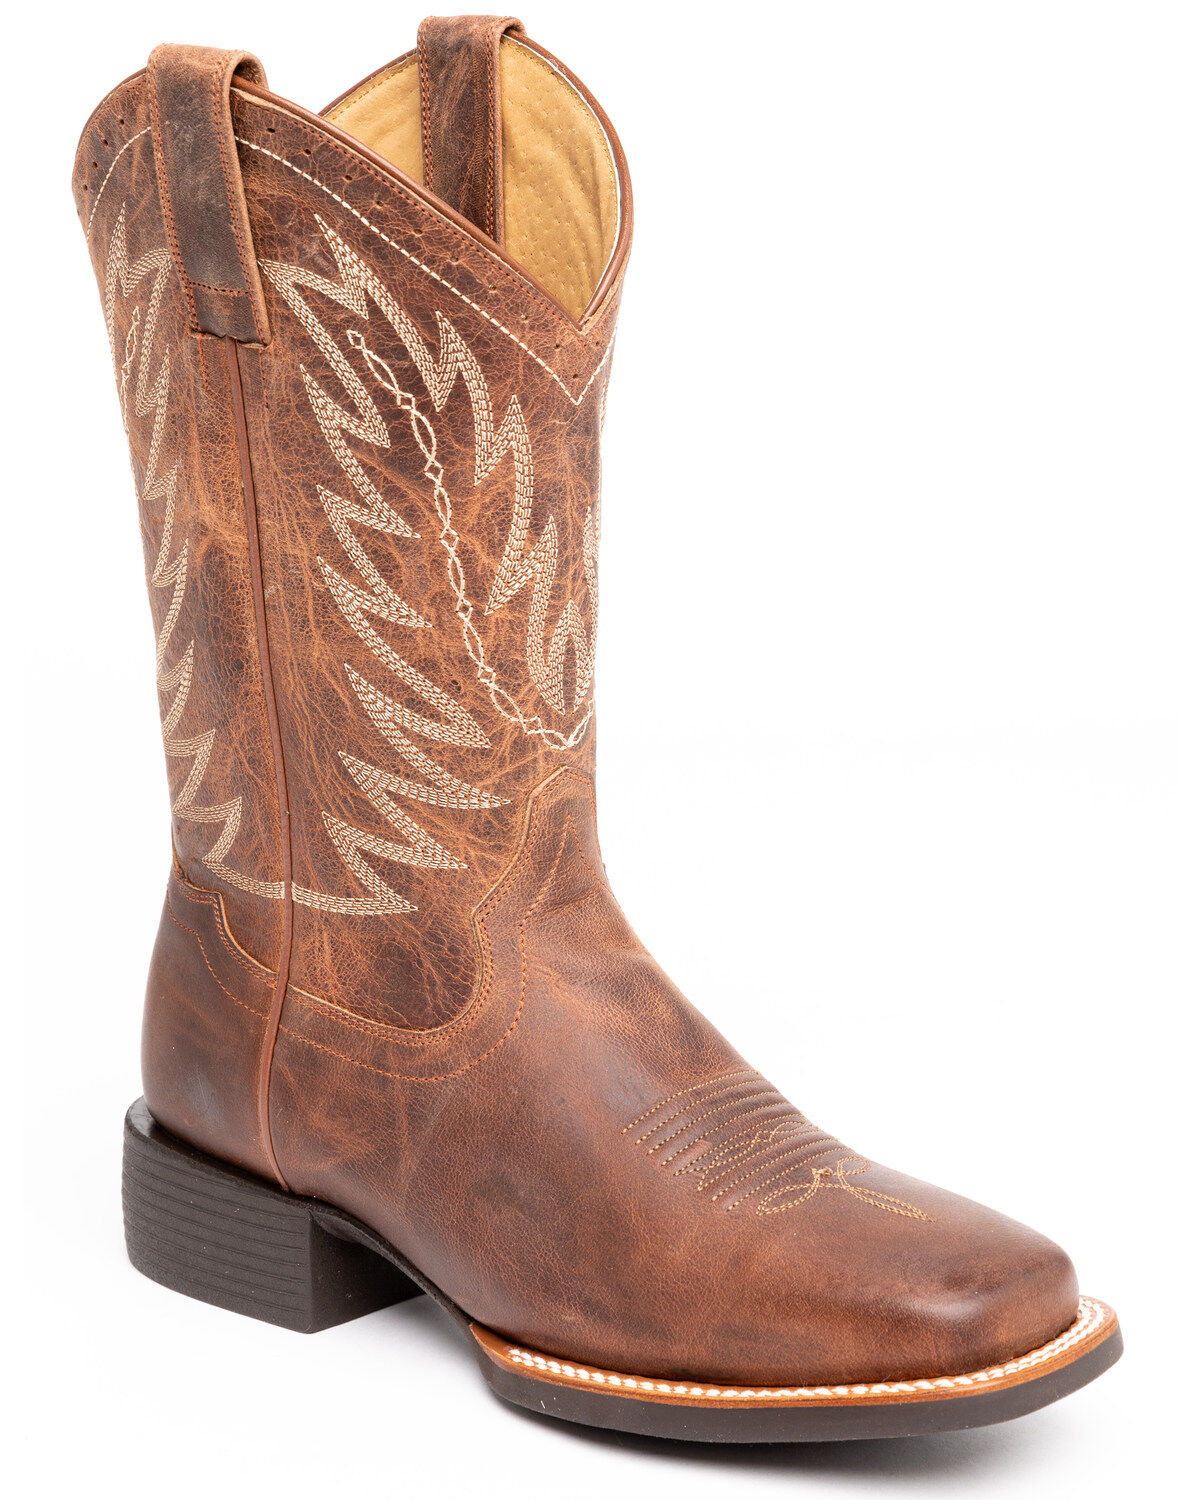 Shyanne Women's The Sure Thing Western